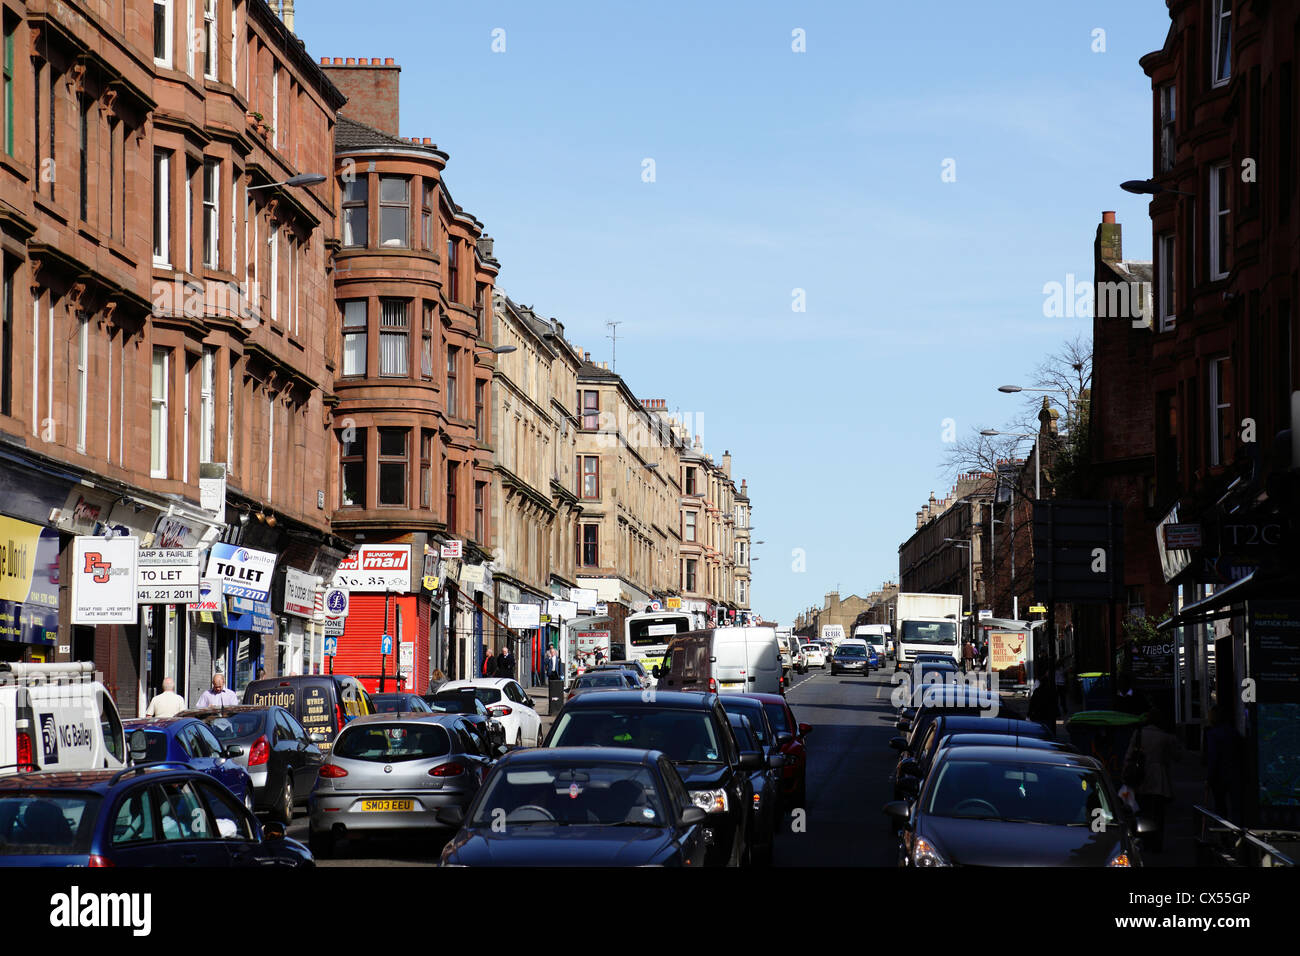 View looking North along Byres Road from Partick Cross in the West End of Glasgow, Scotland, UK - Stock Image